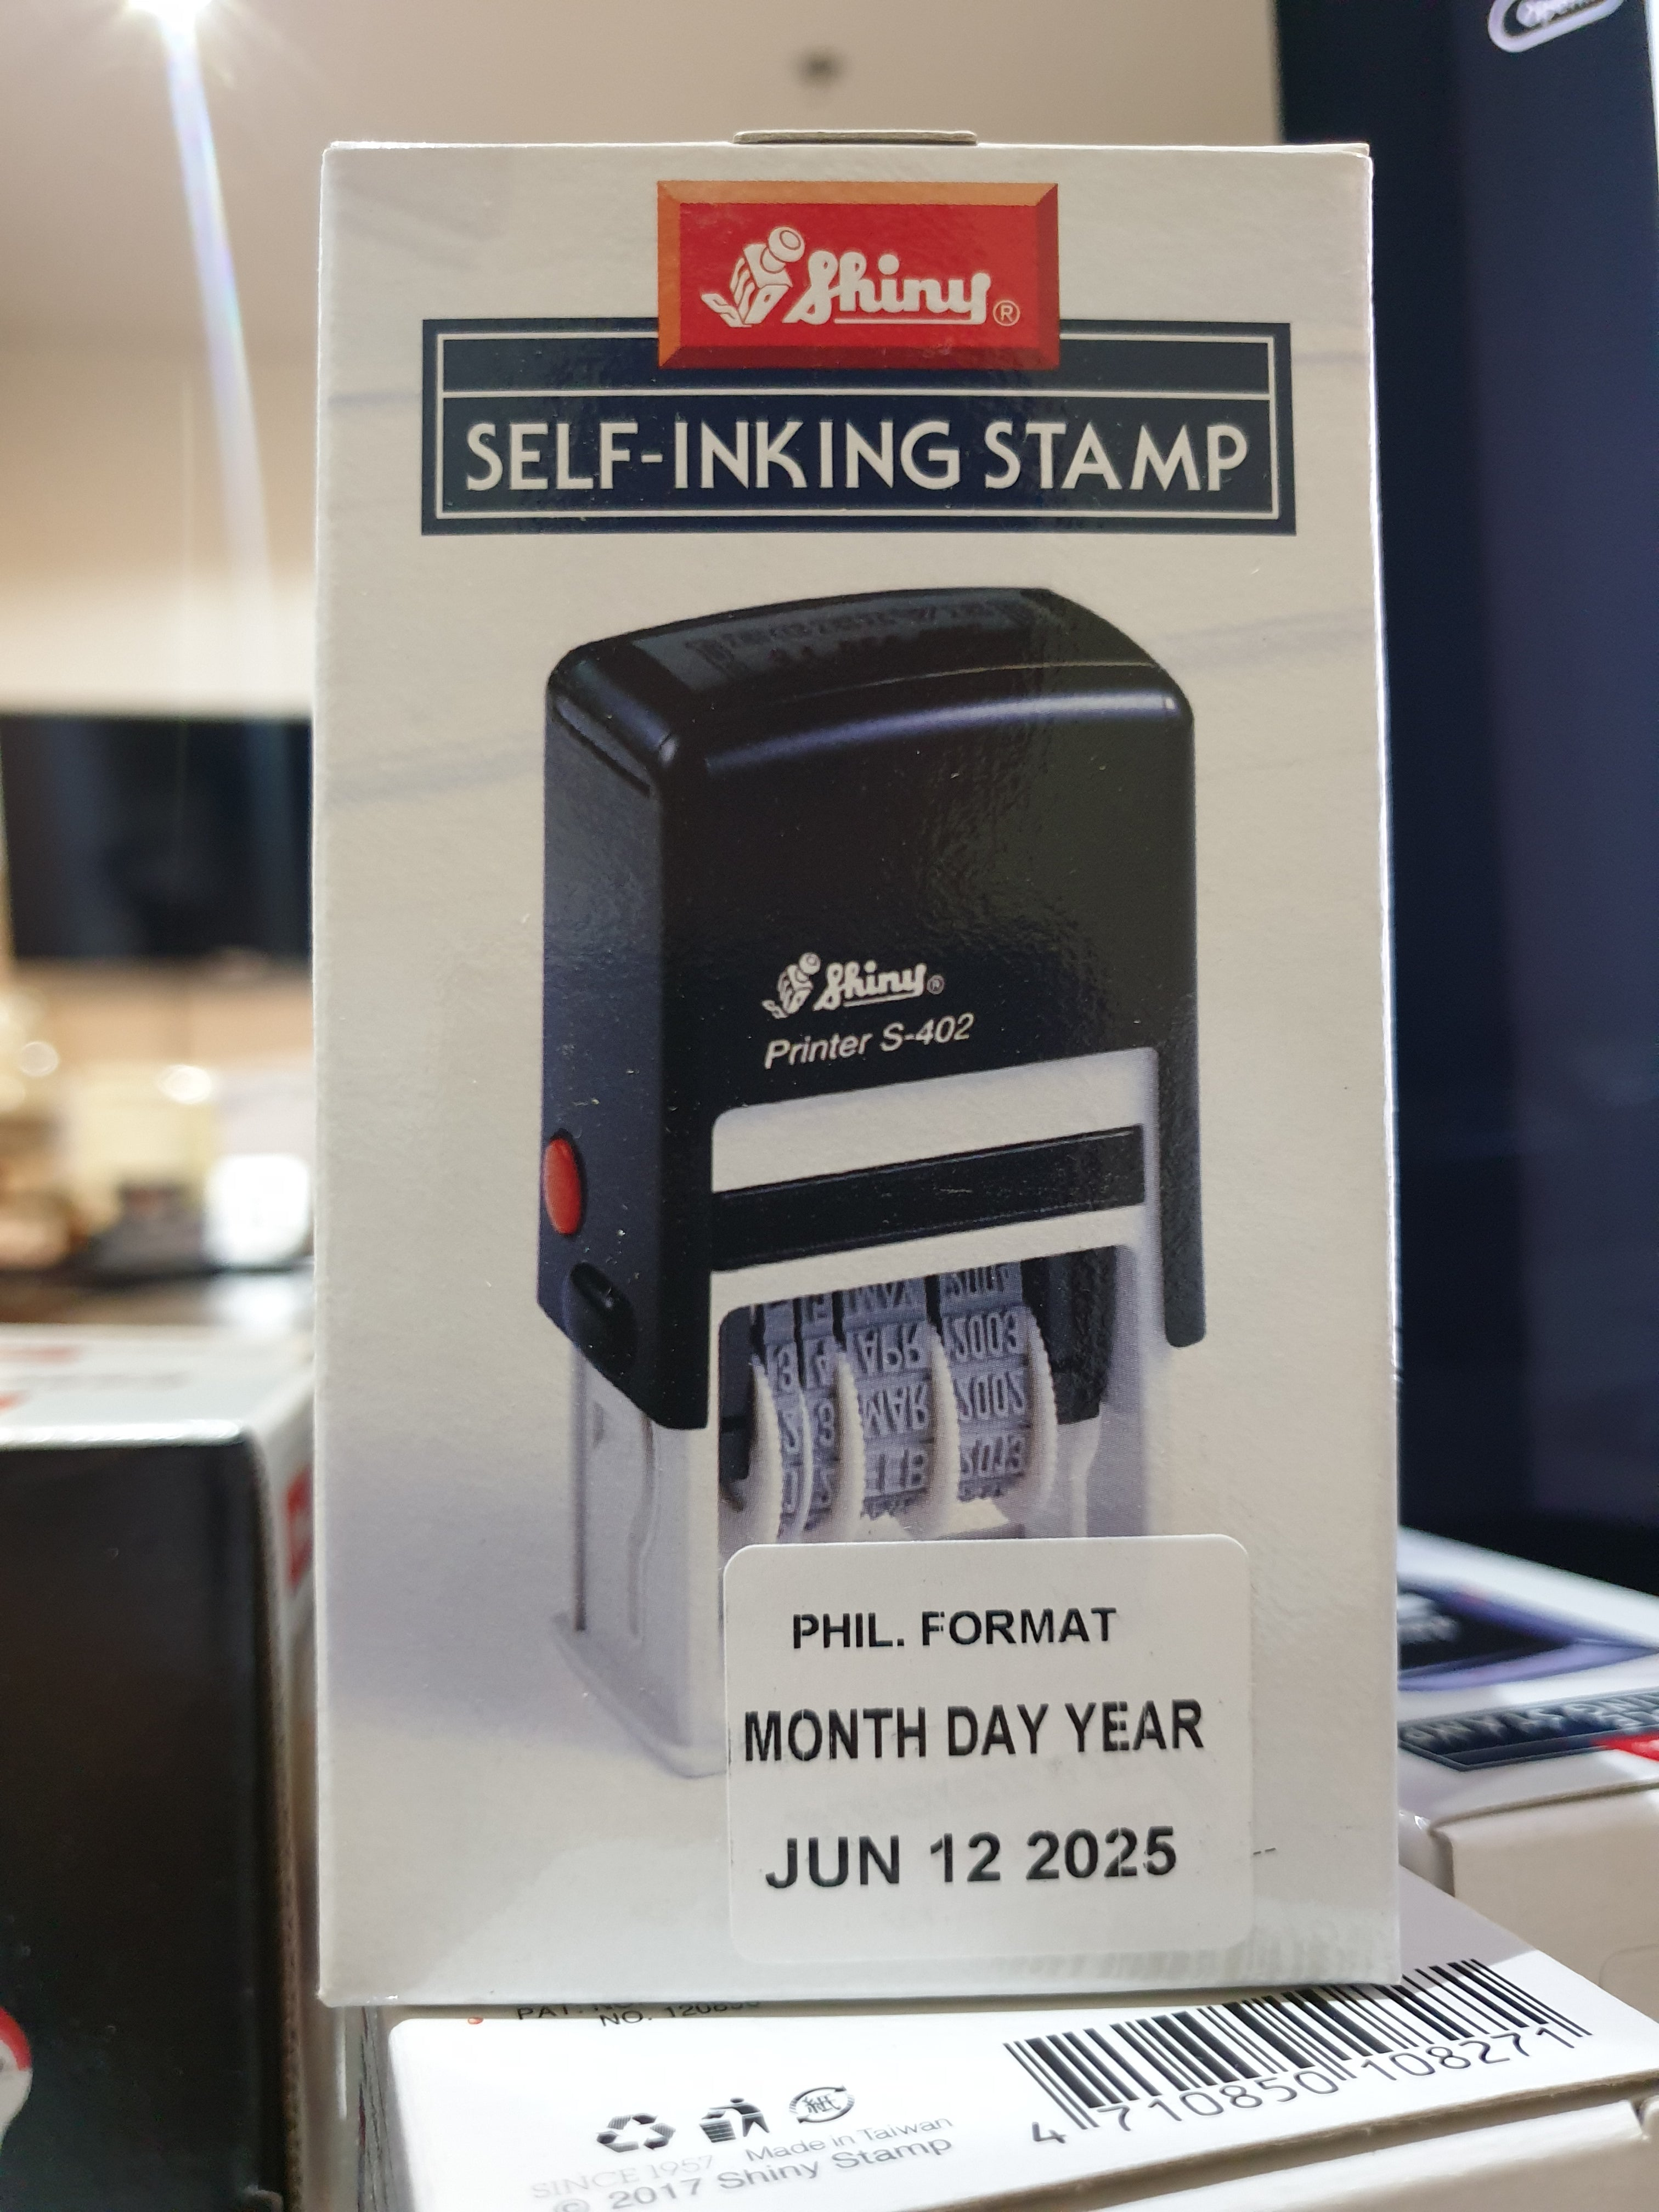 S-402 Shiny Self-Inking Stamp RECEIVED